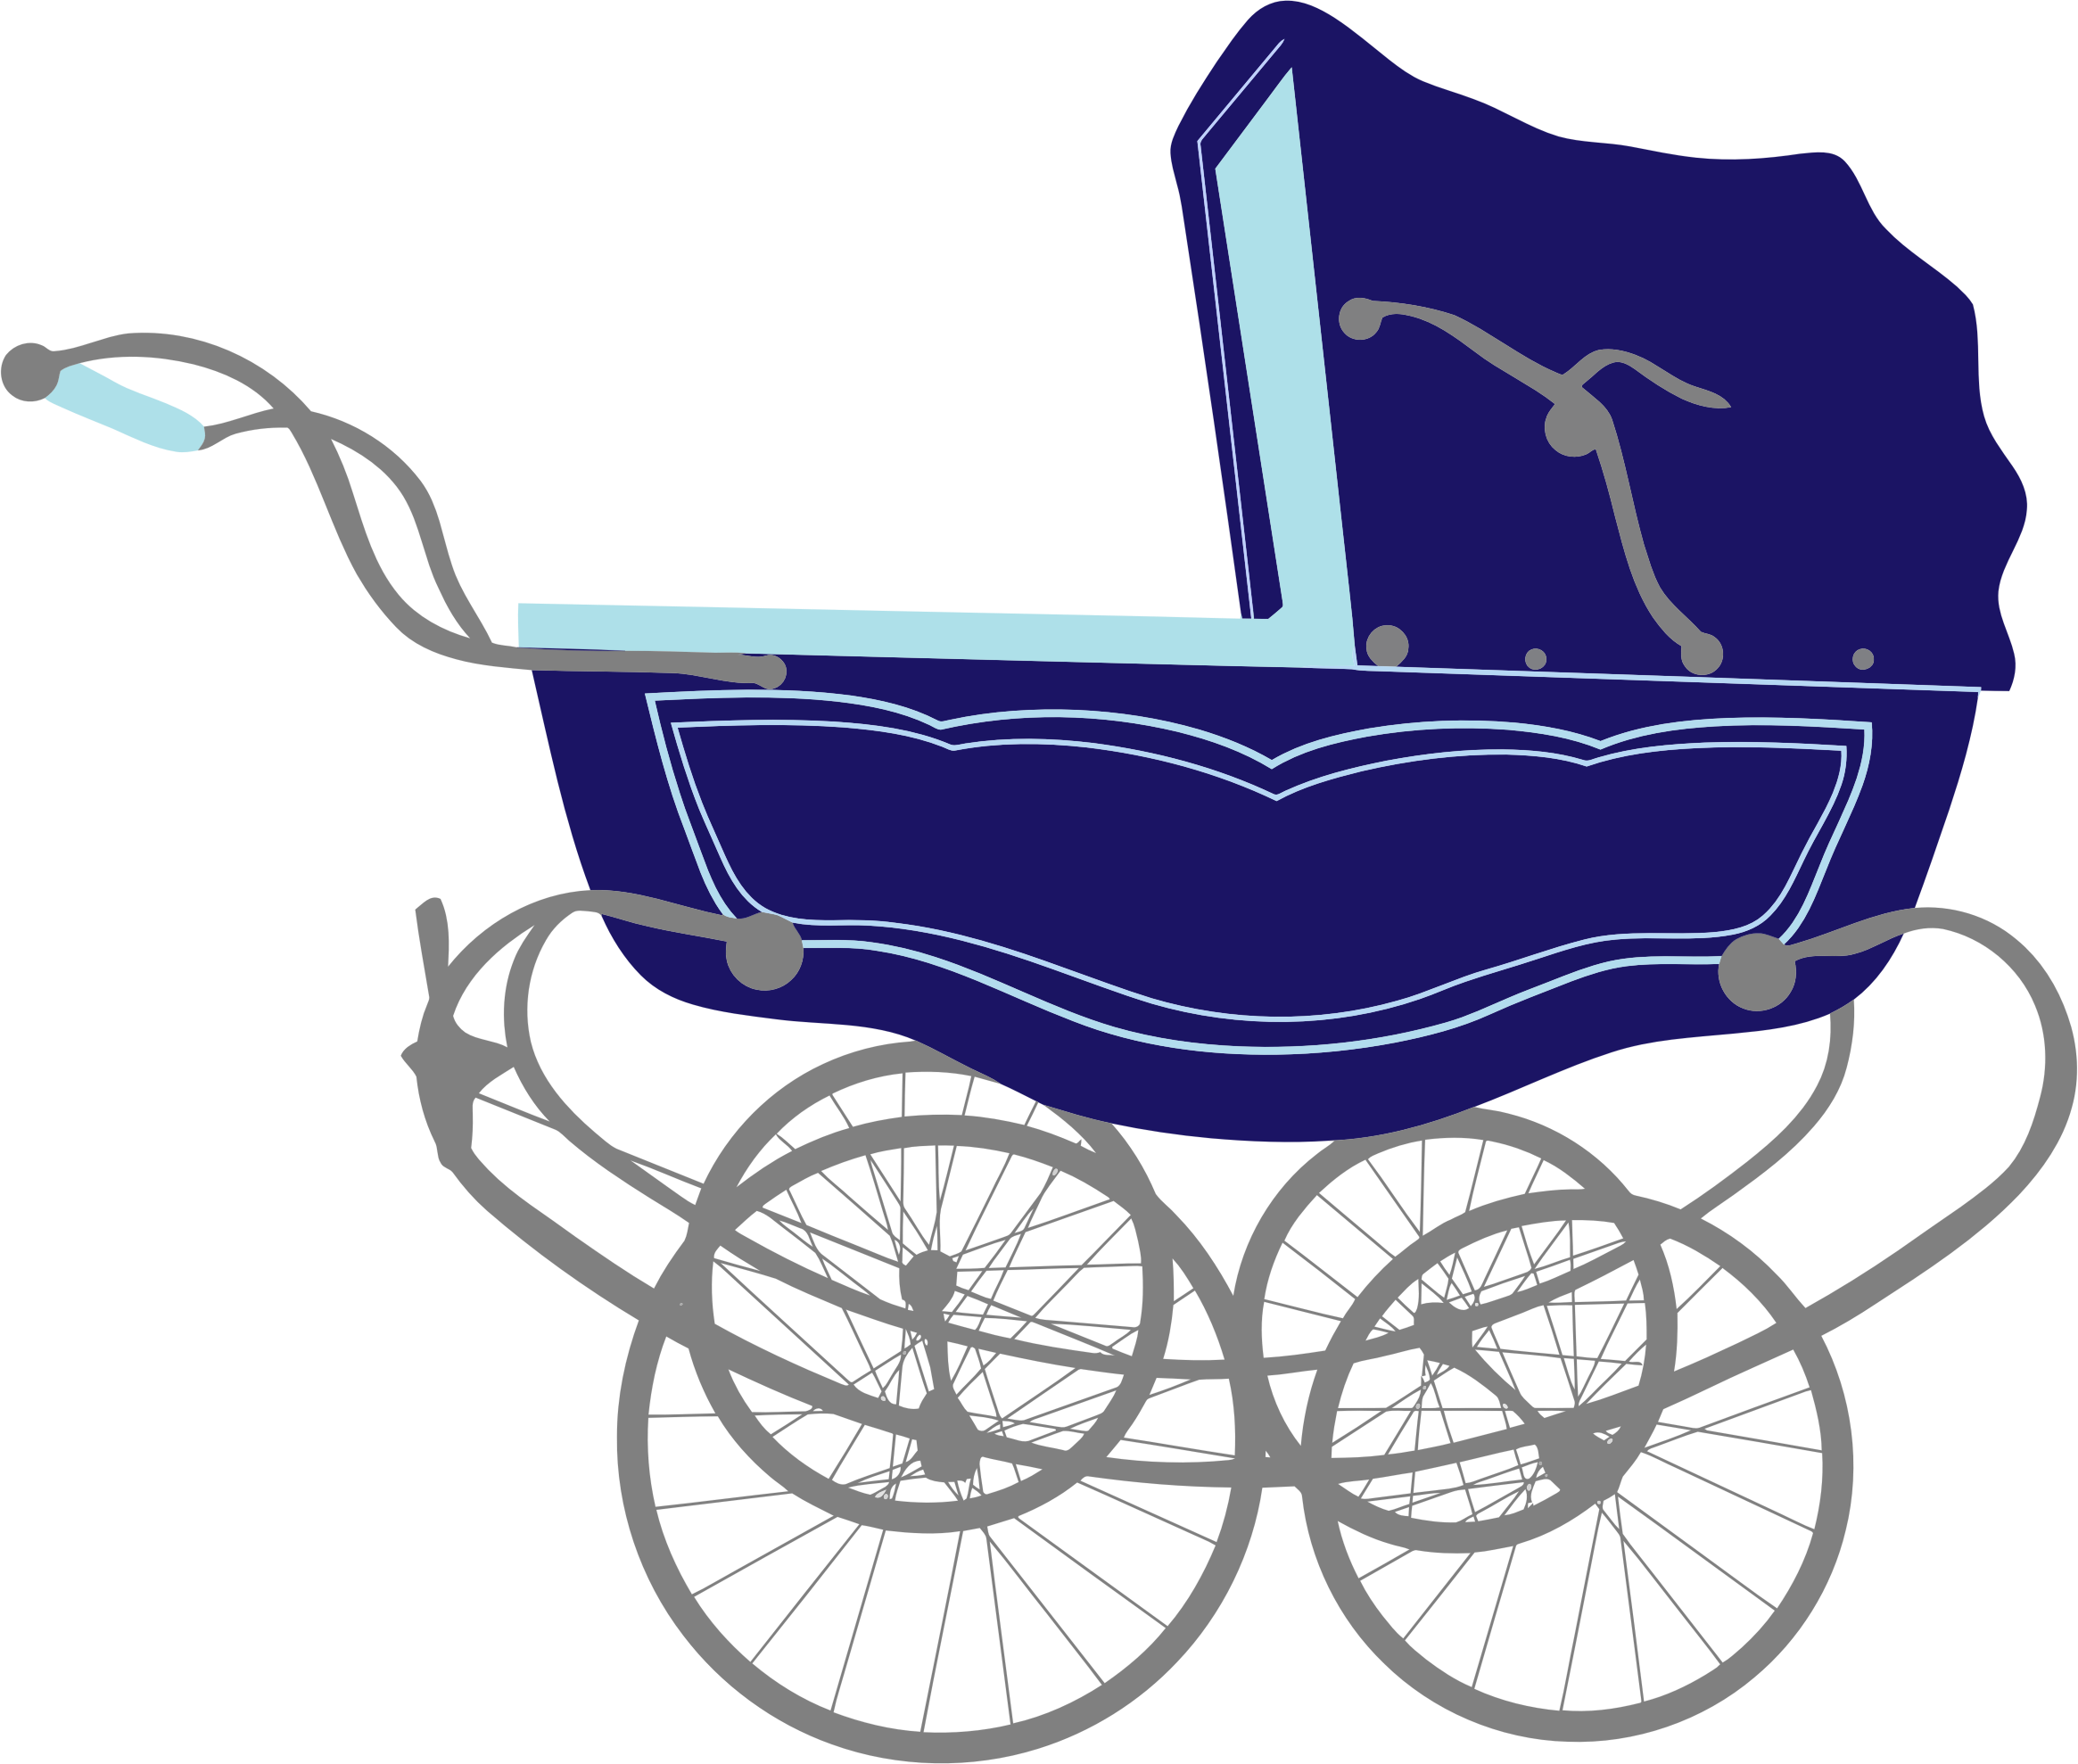 graphic freeuse download Clipart vintage blue carriage. Vector baby stroller